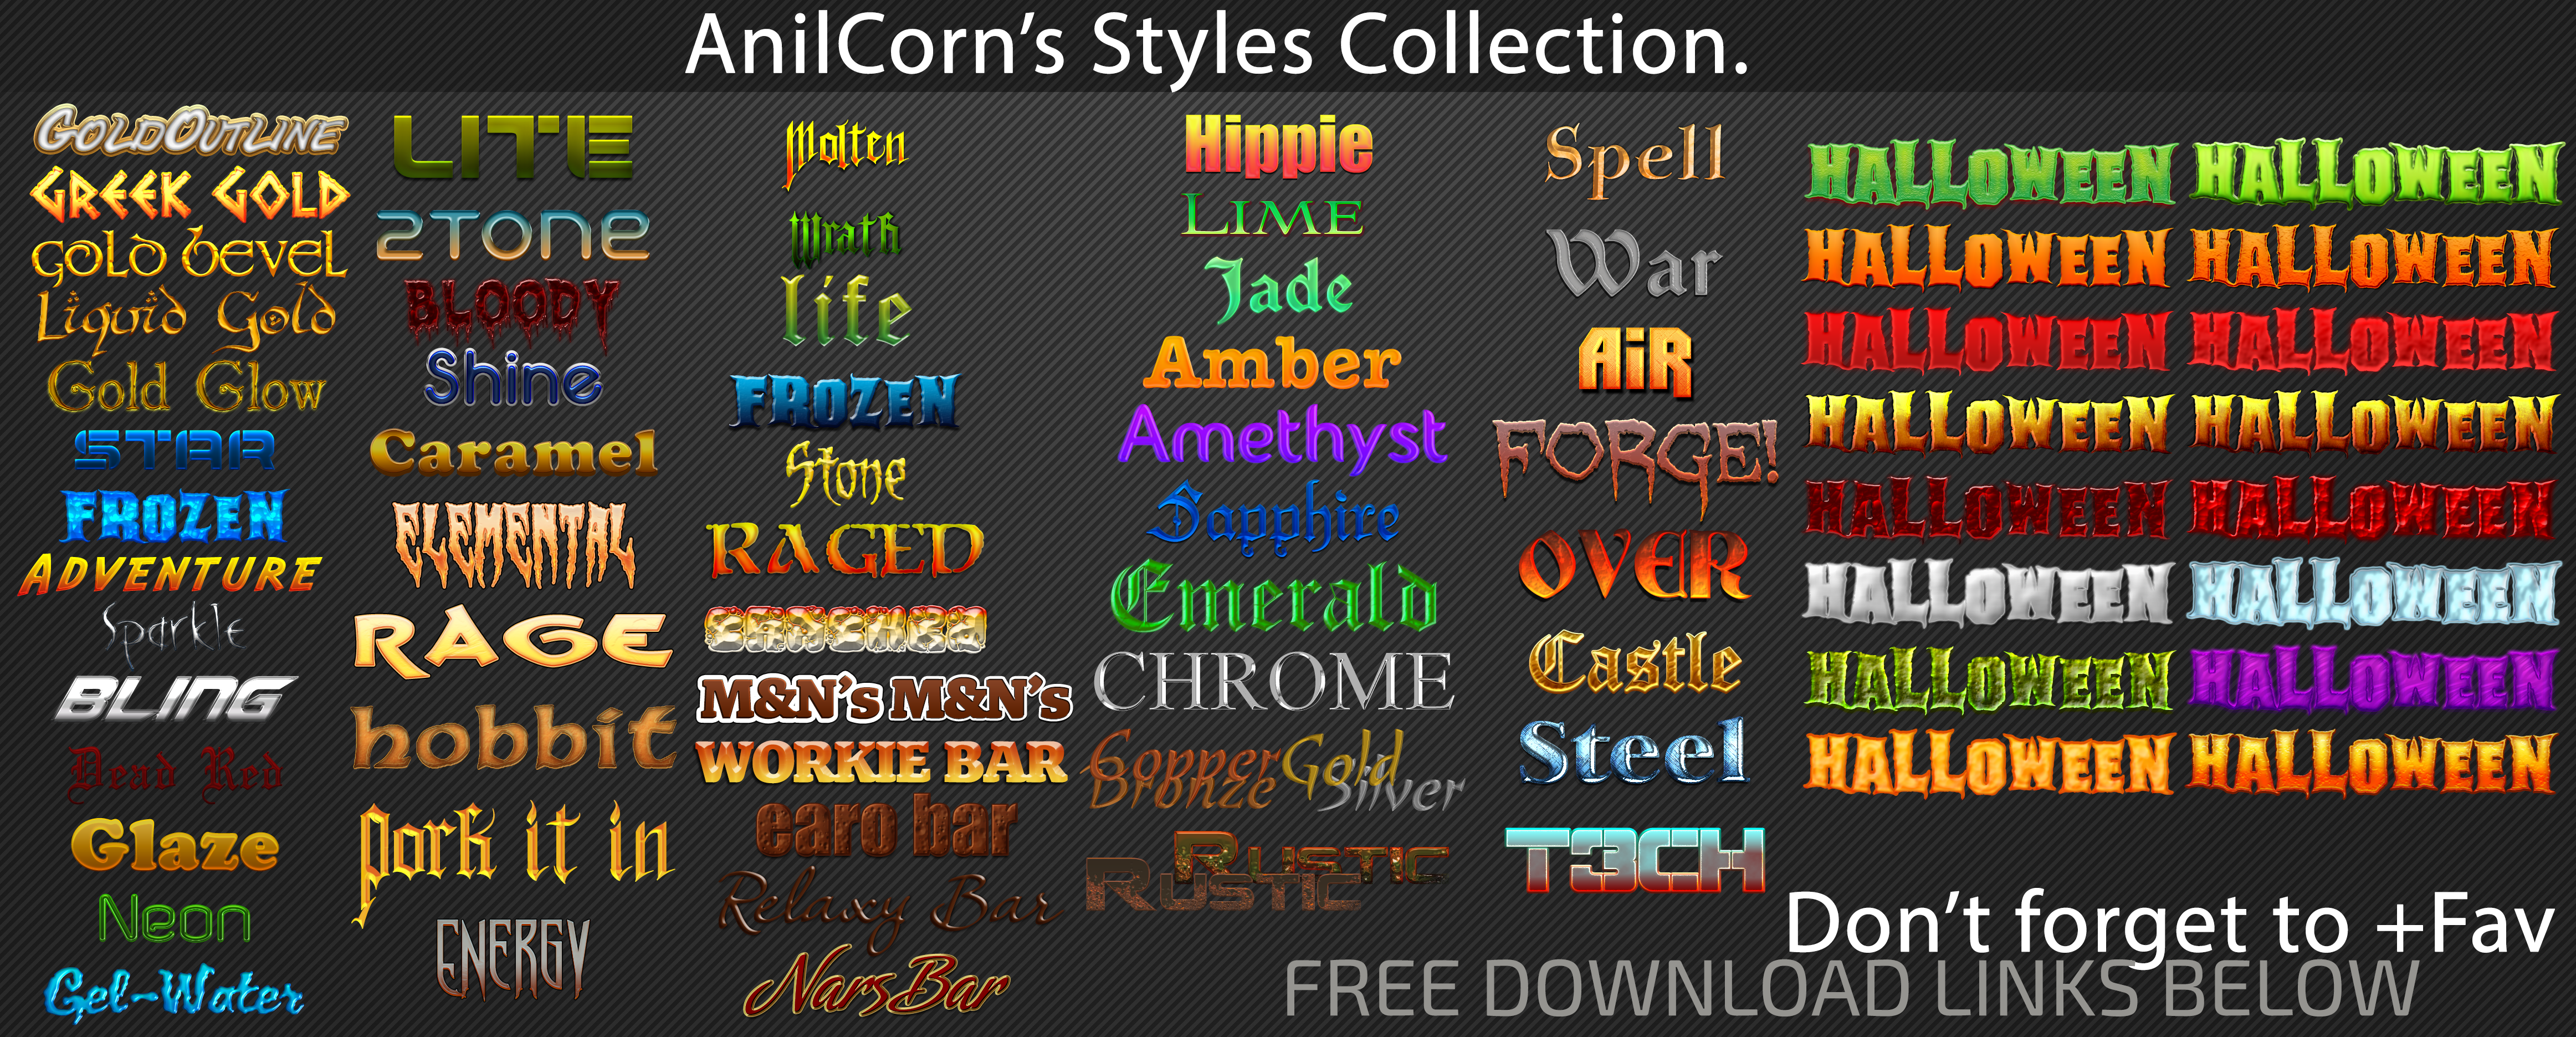 Anilcorns Styles All-in-one